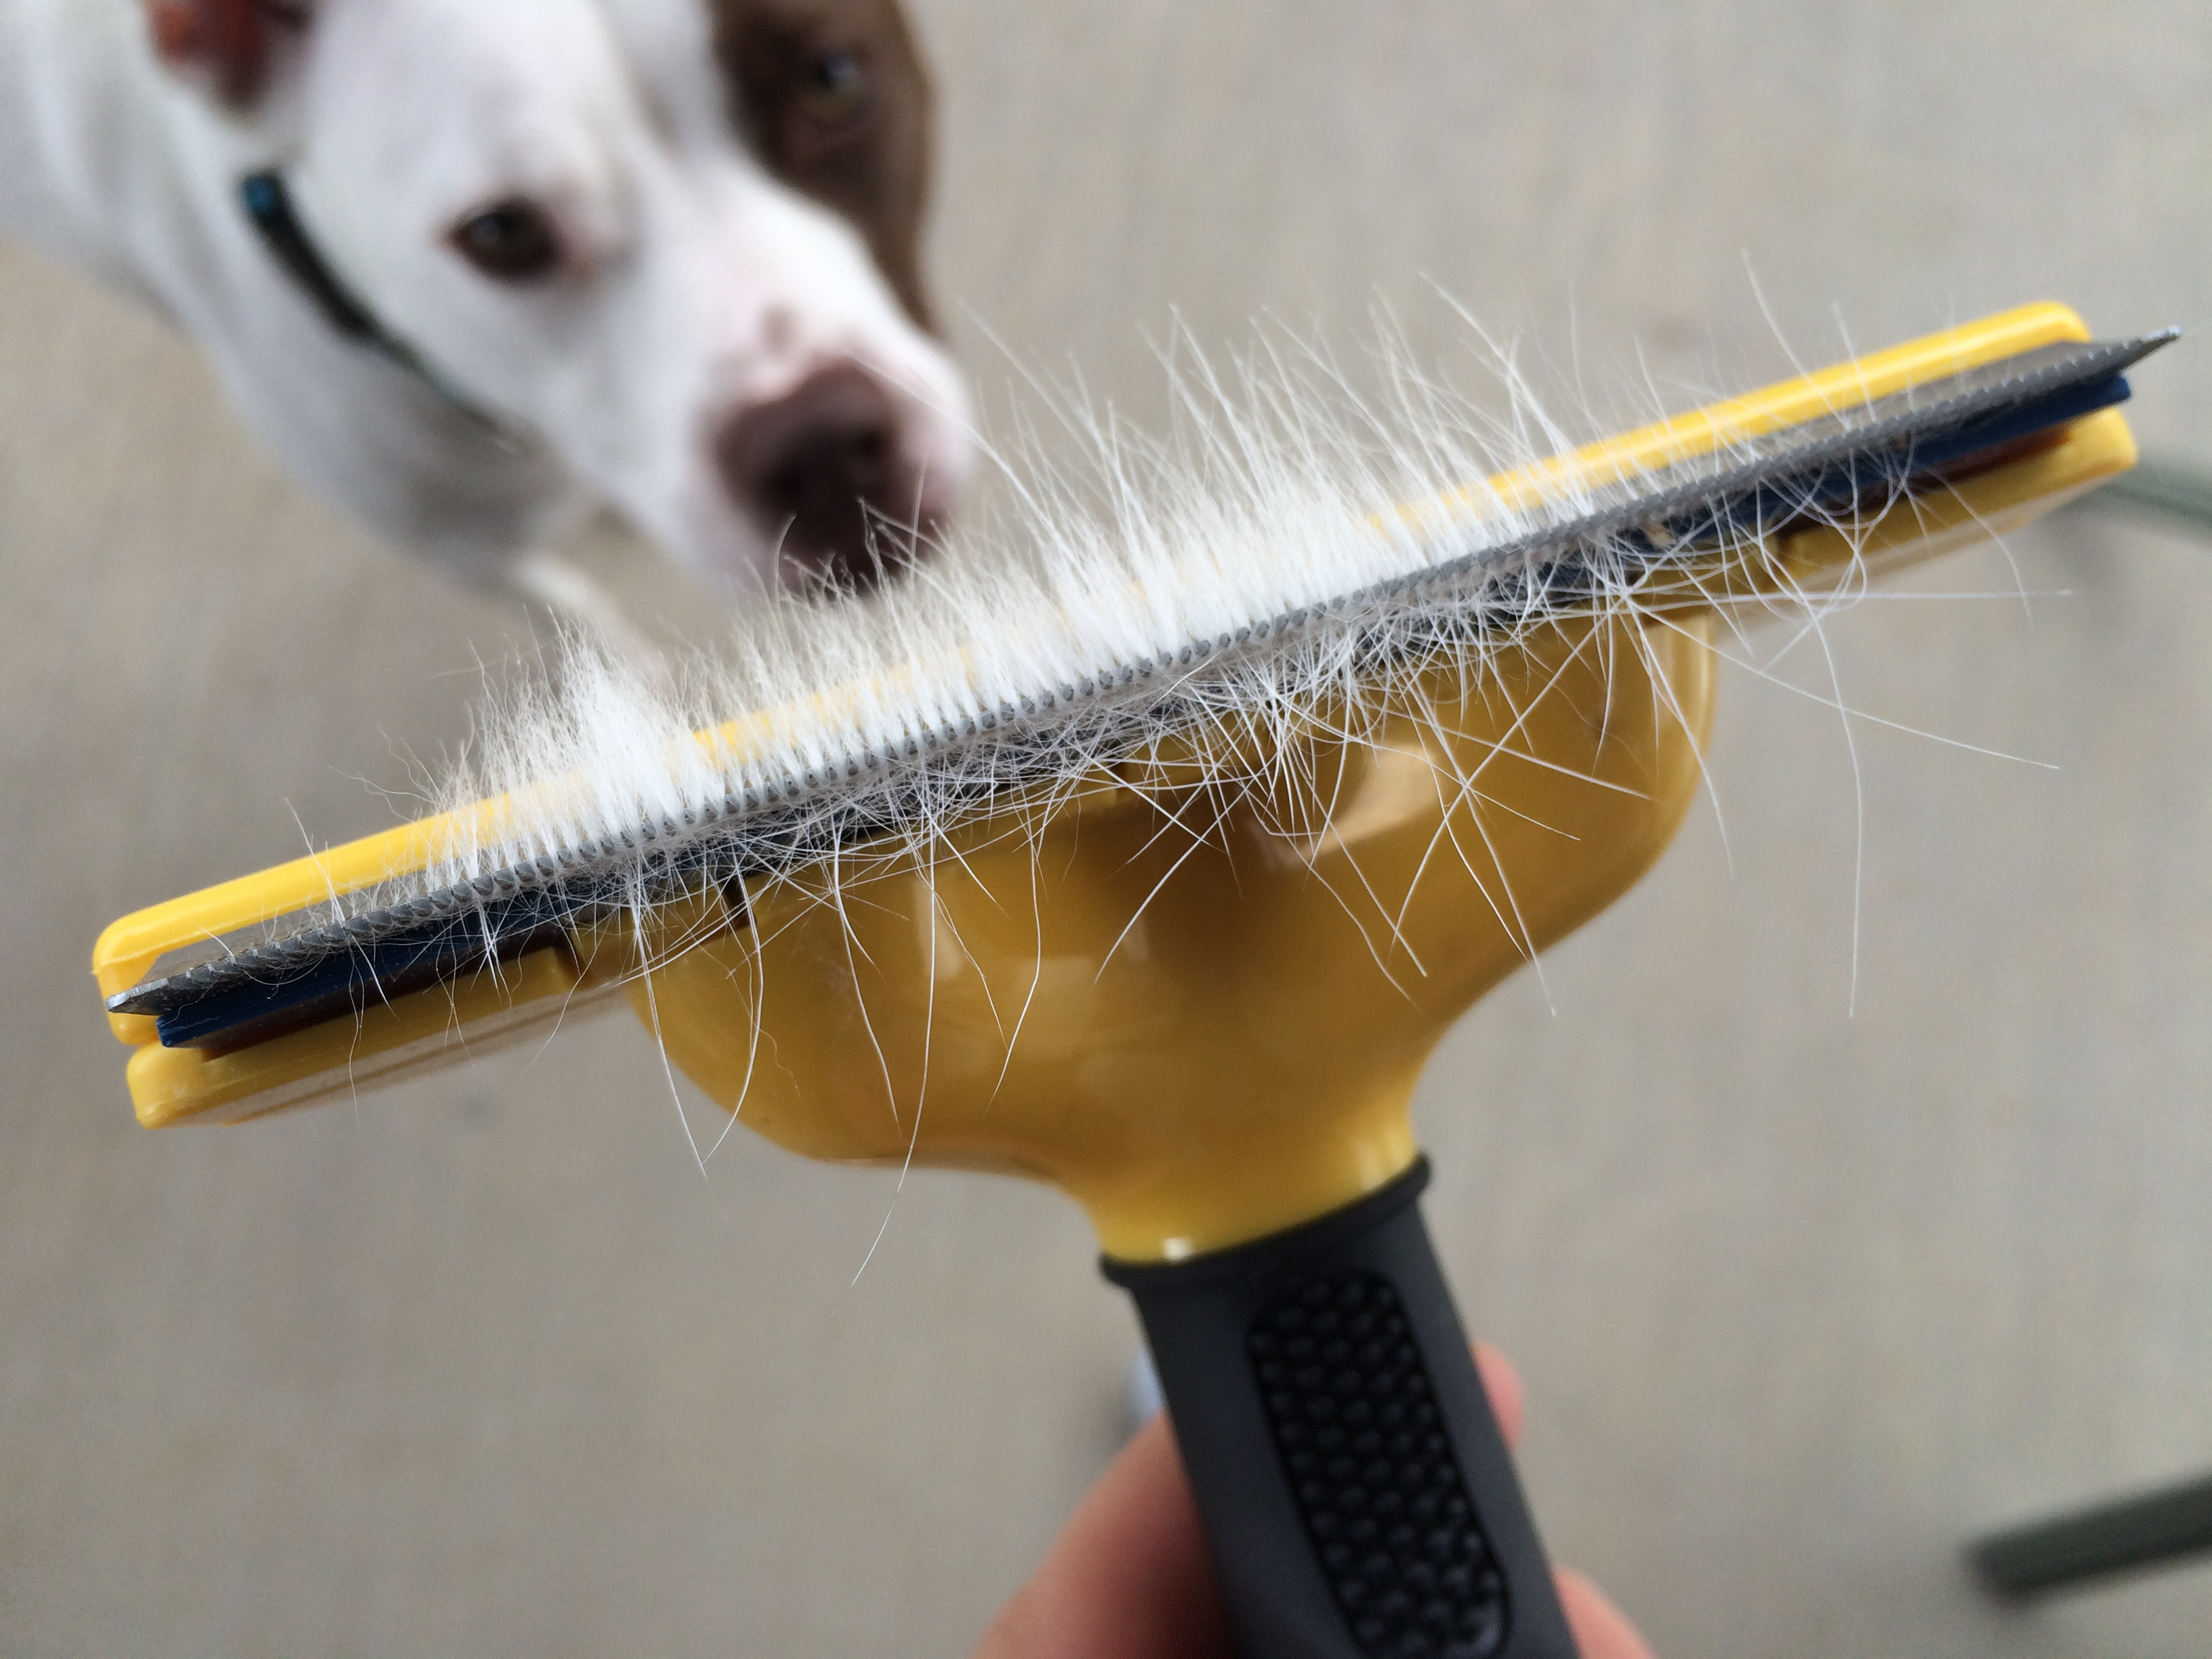 ways your sheds to shedding dog from keep wikihow step